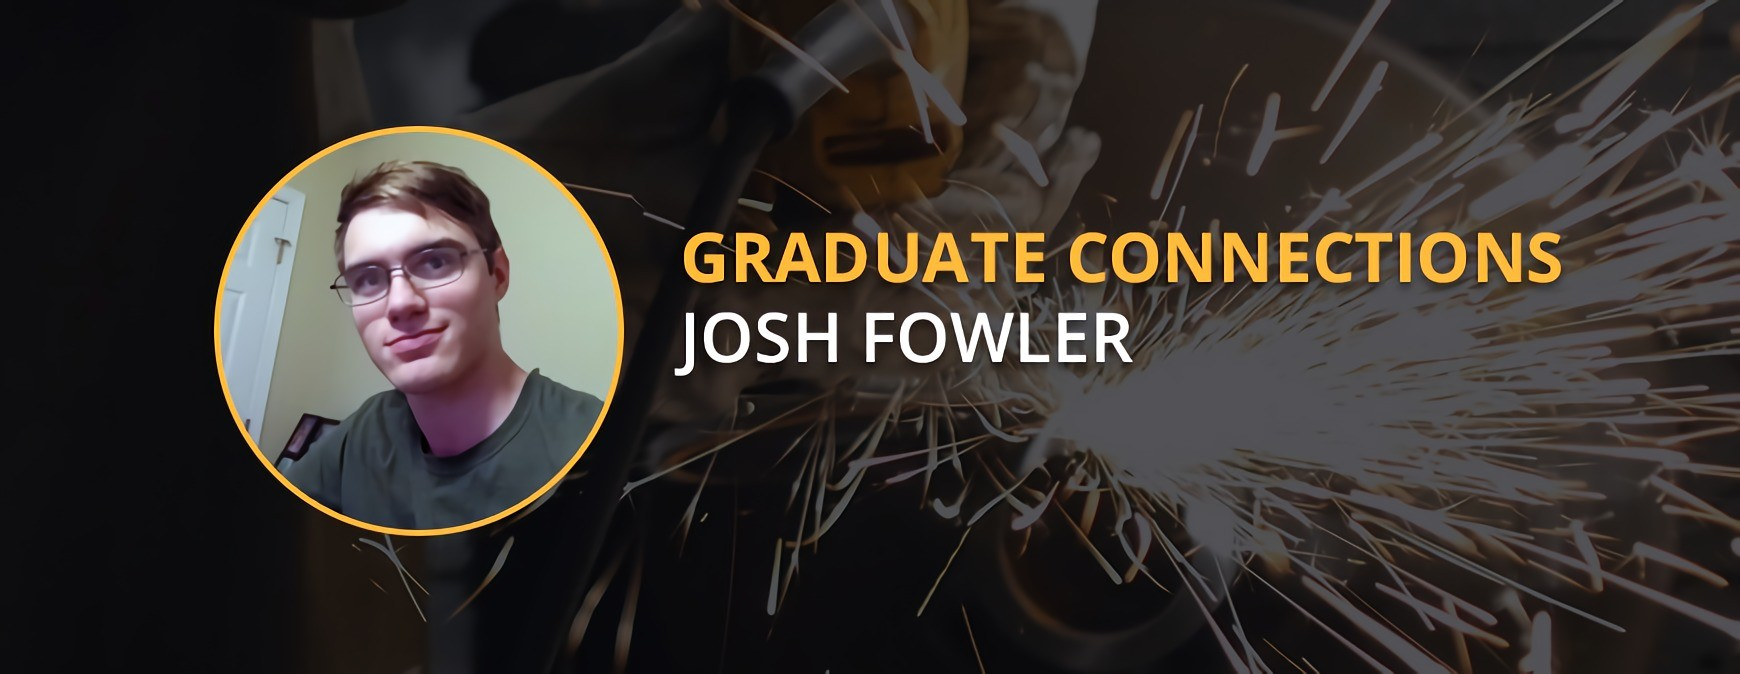 Josh Fowler Graduate Connection